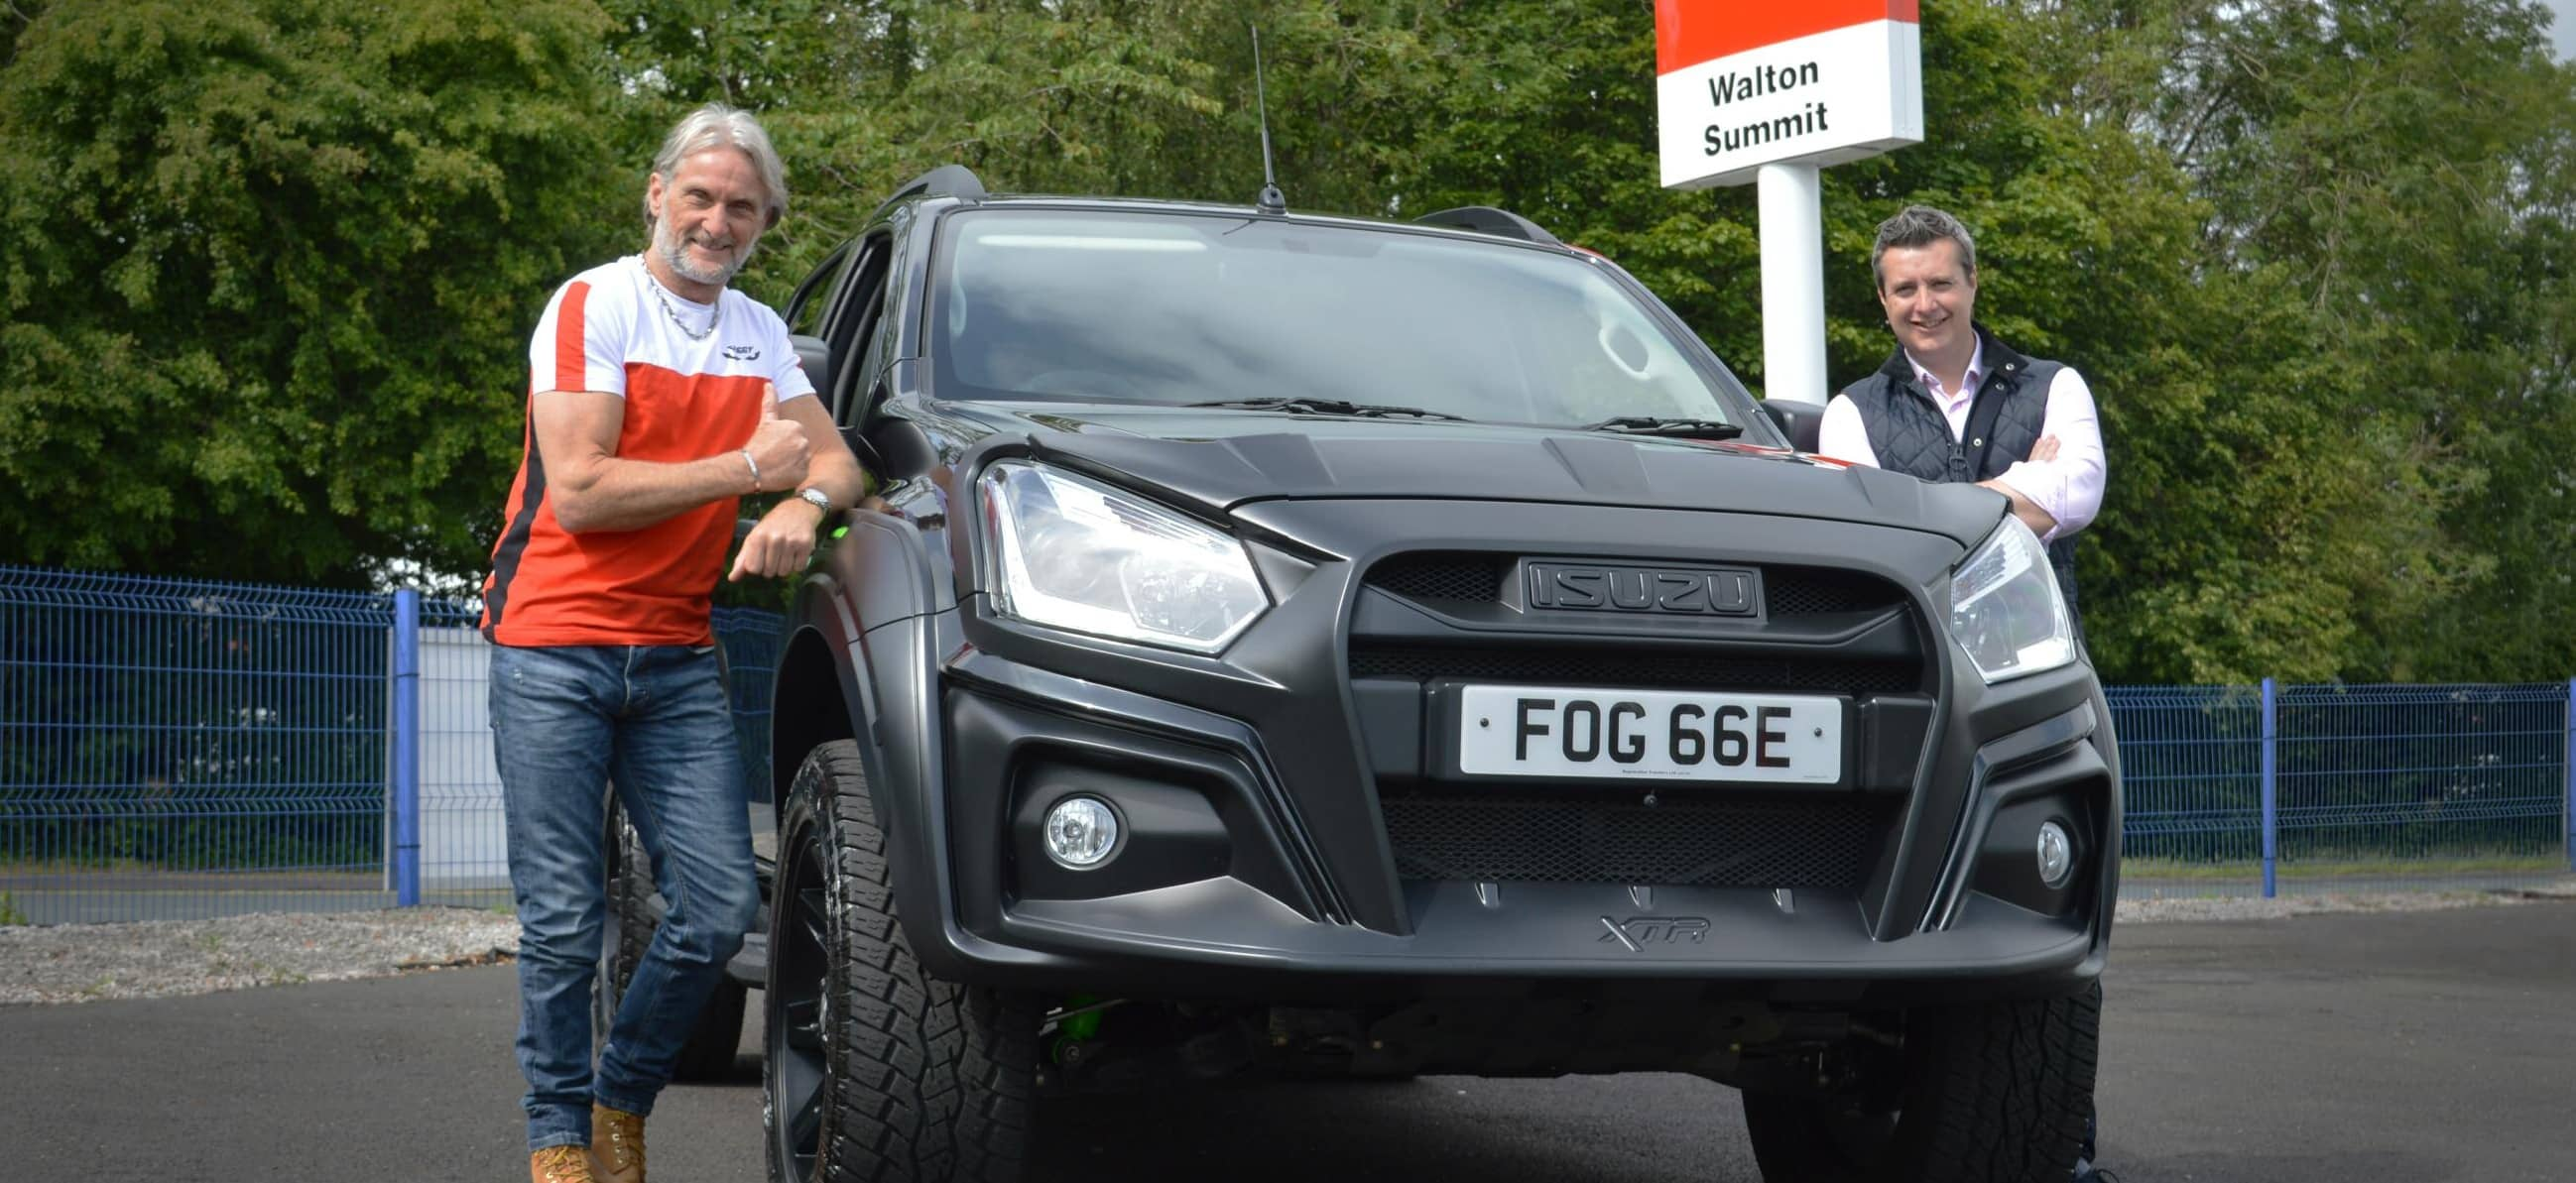 Carl Fogarty goes from on-track racing to offroad adventure with Isuzu